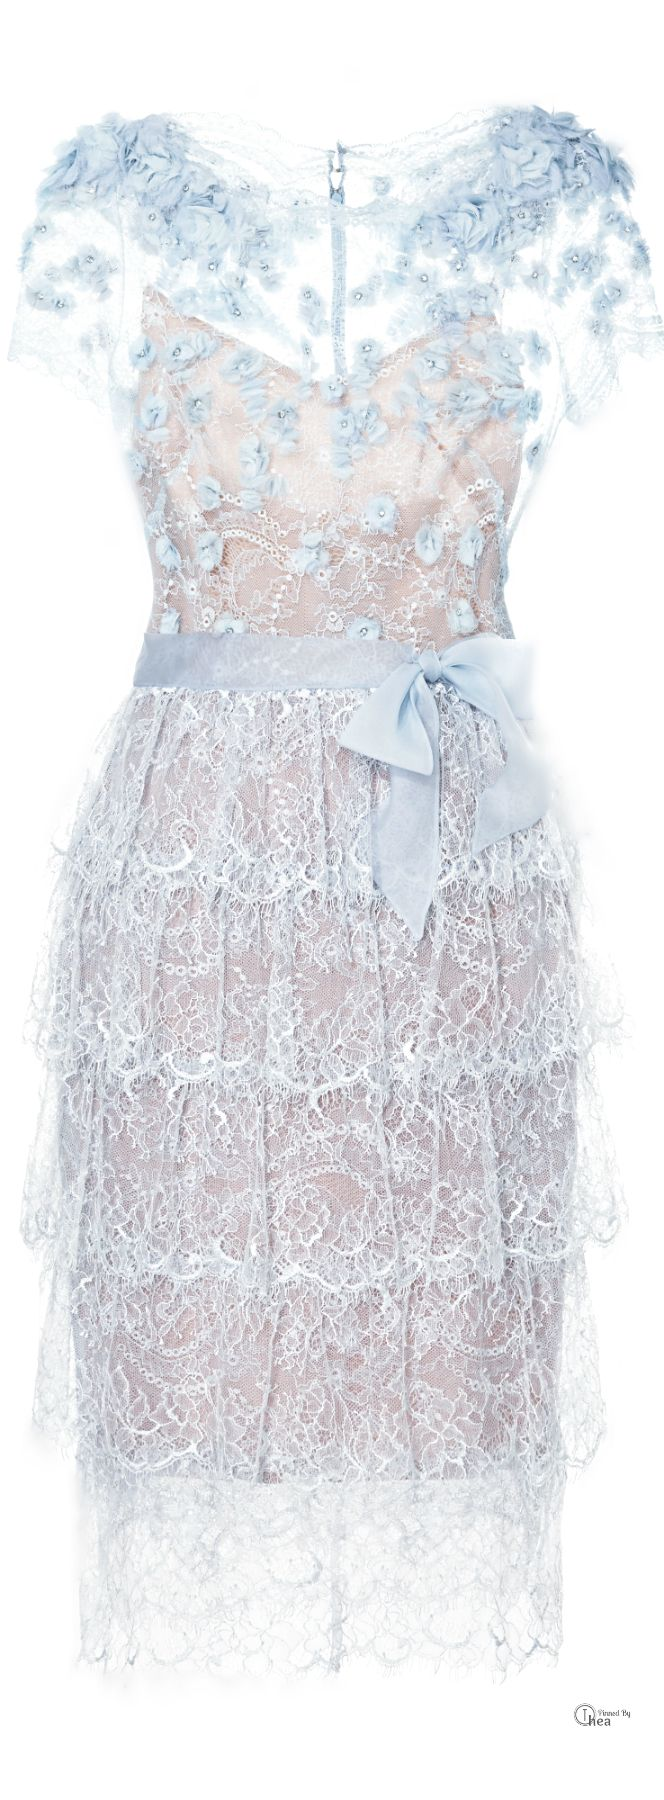 Marchesa ● Lace Cocktail Dress What to Wear to a Wedding?